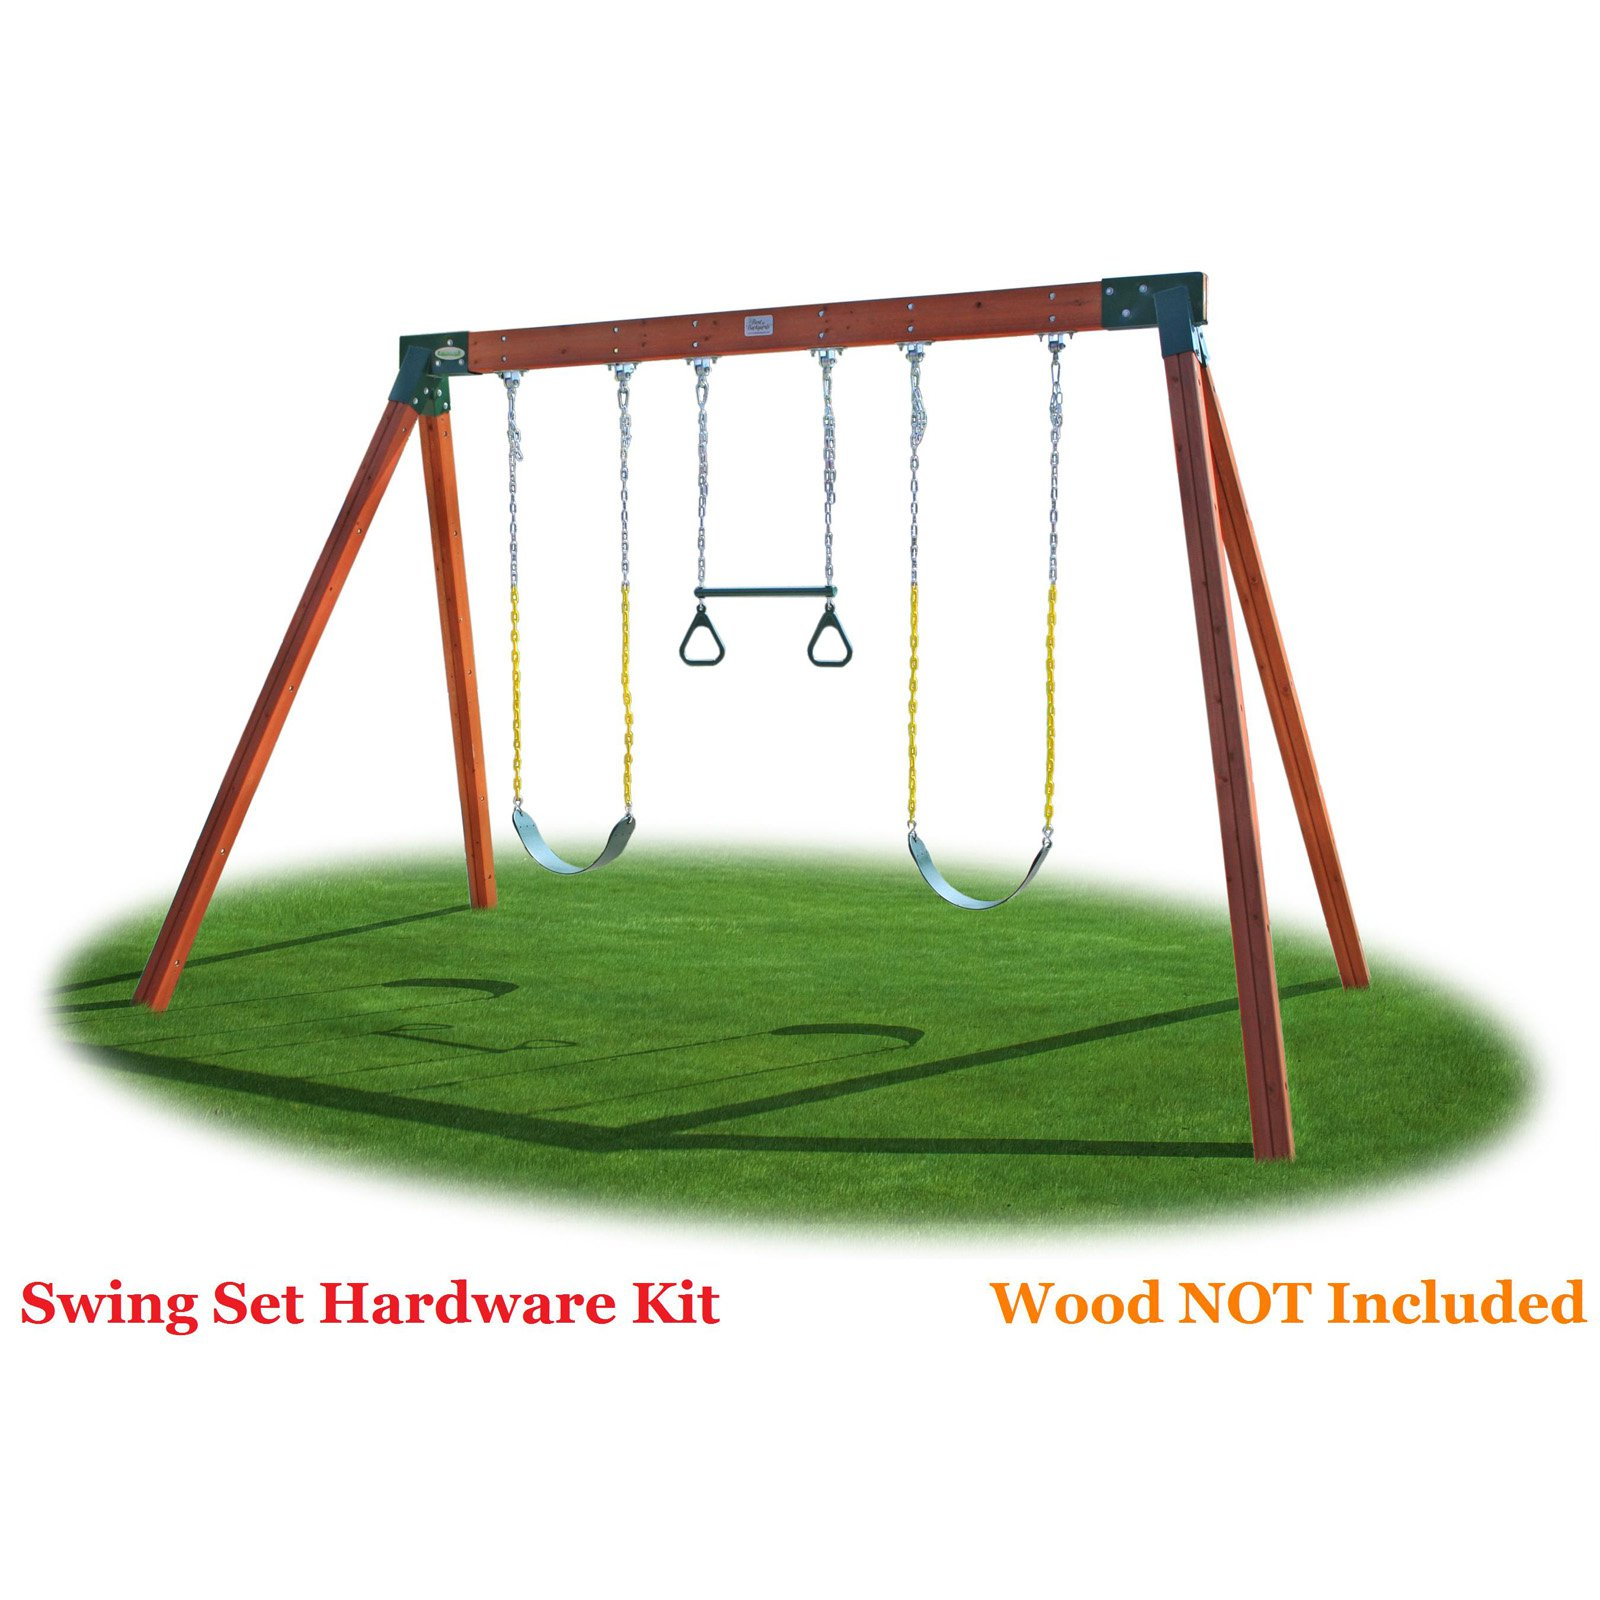 Eastern Jungle Gym Classic A-Frame Swing Set Hardware Kit - Walmart.com